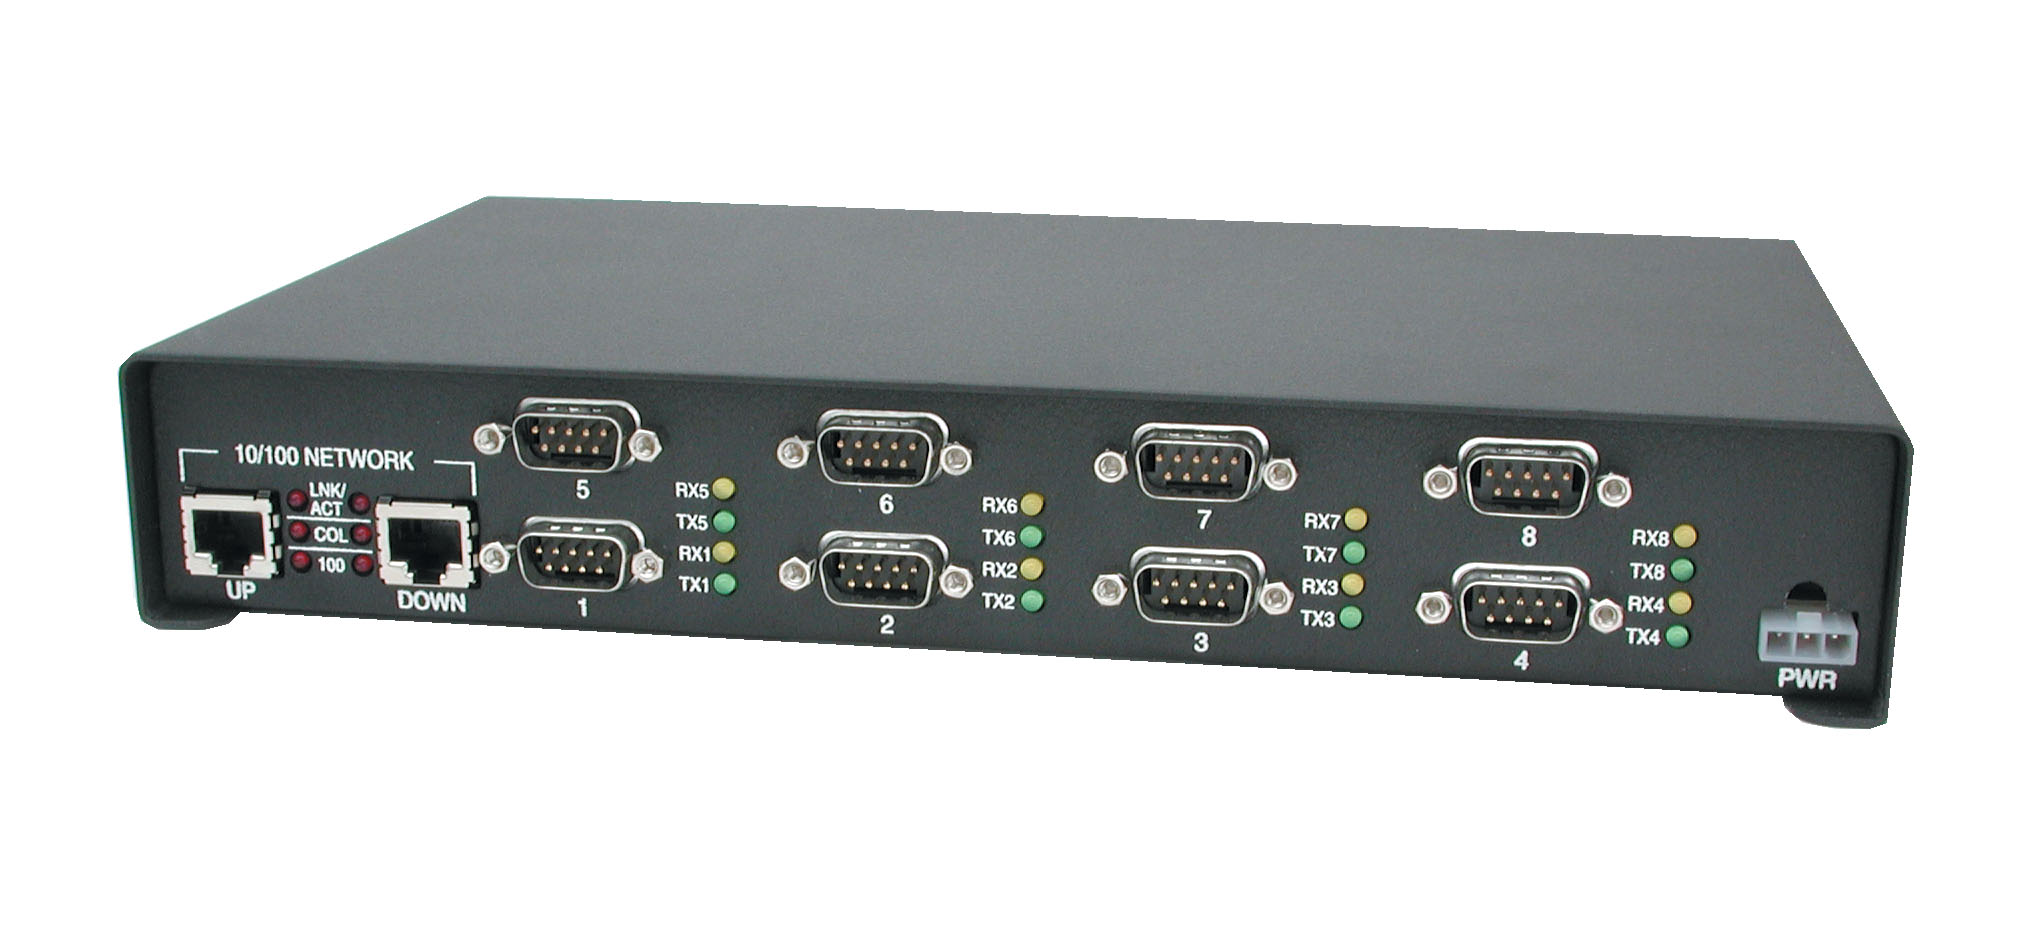 DeviceMaster Serial Ports